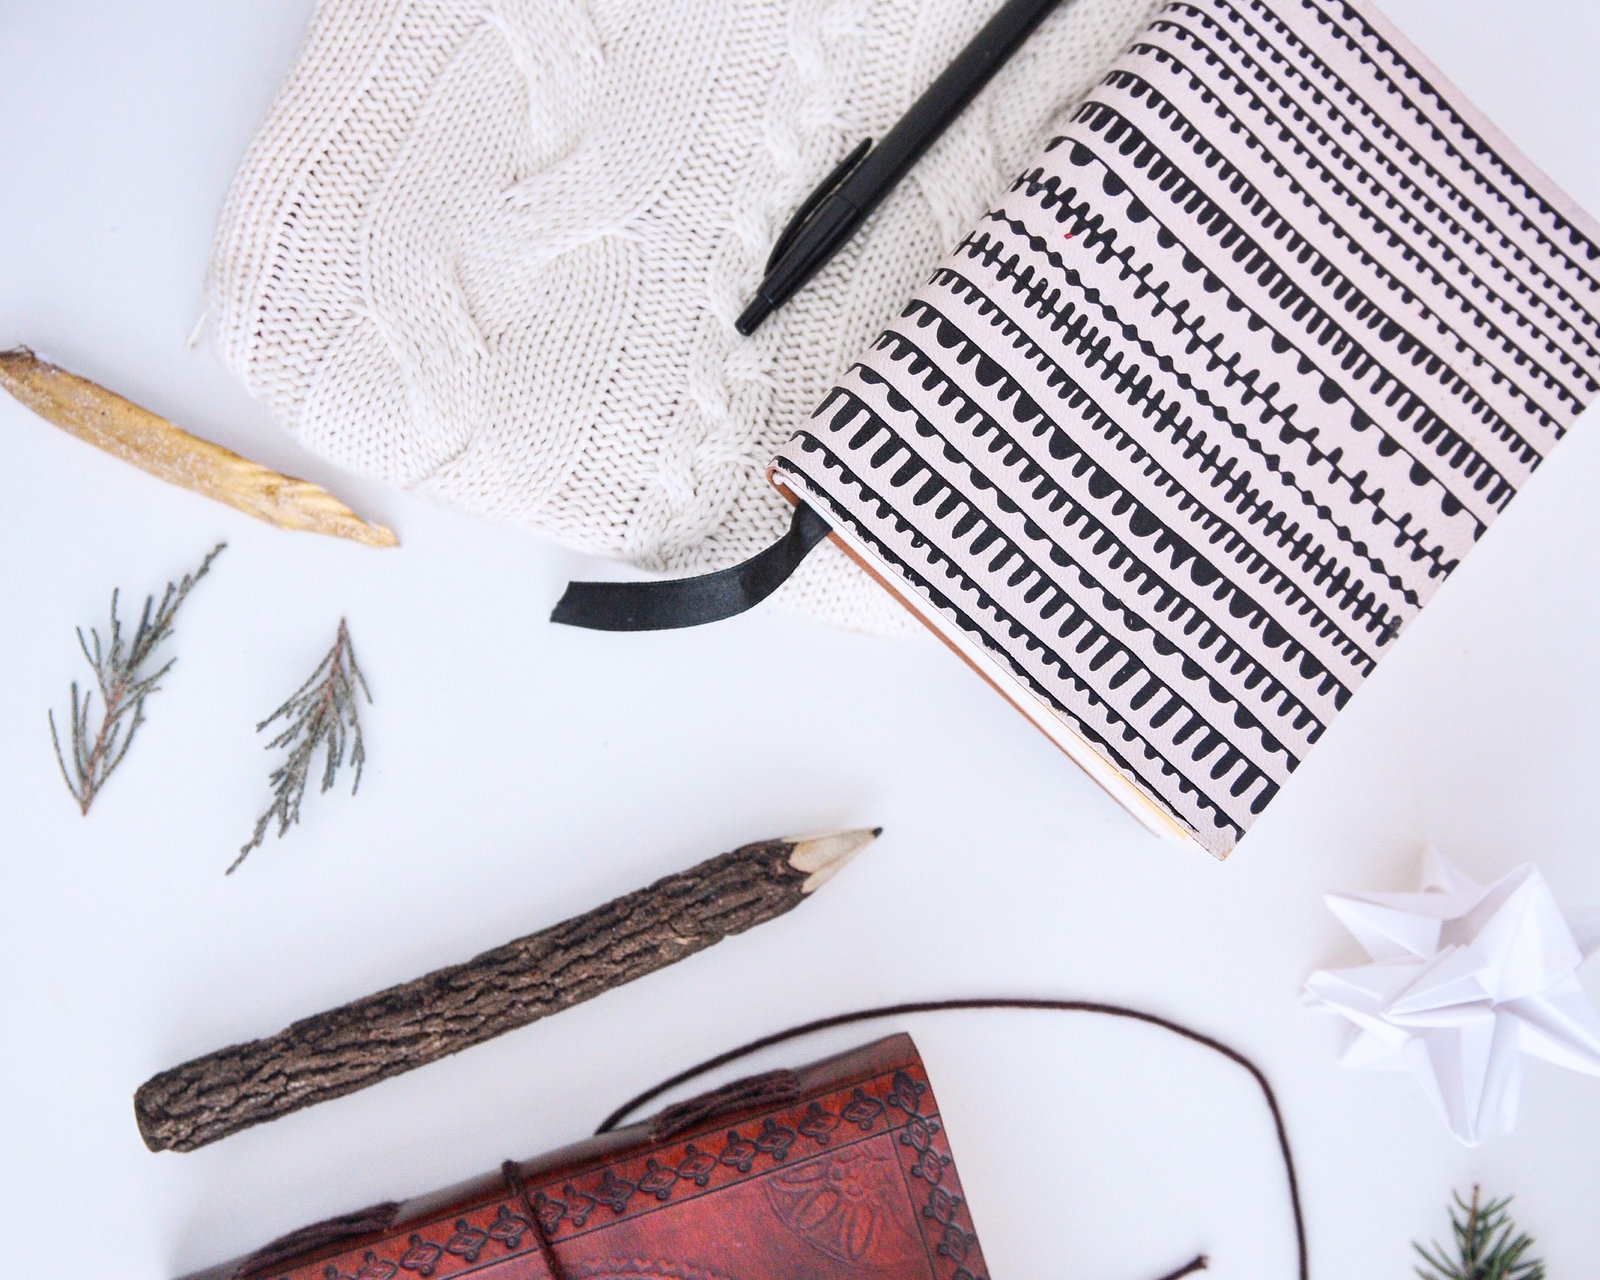 Styled Journals Product Editorial Photography by Melissa E Earle Mee